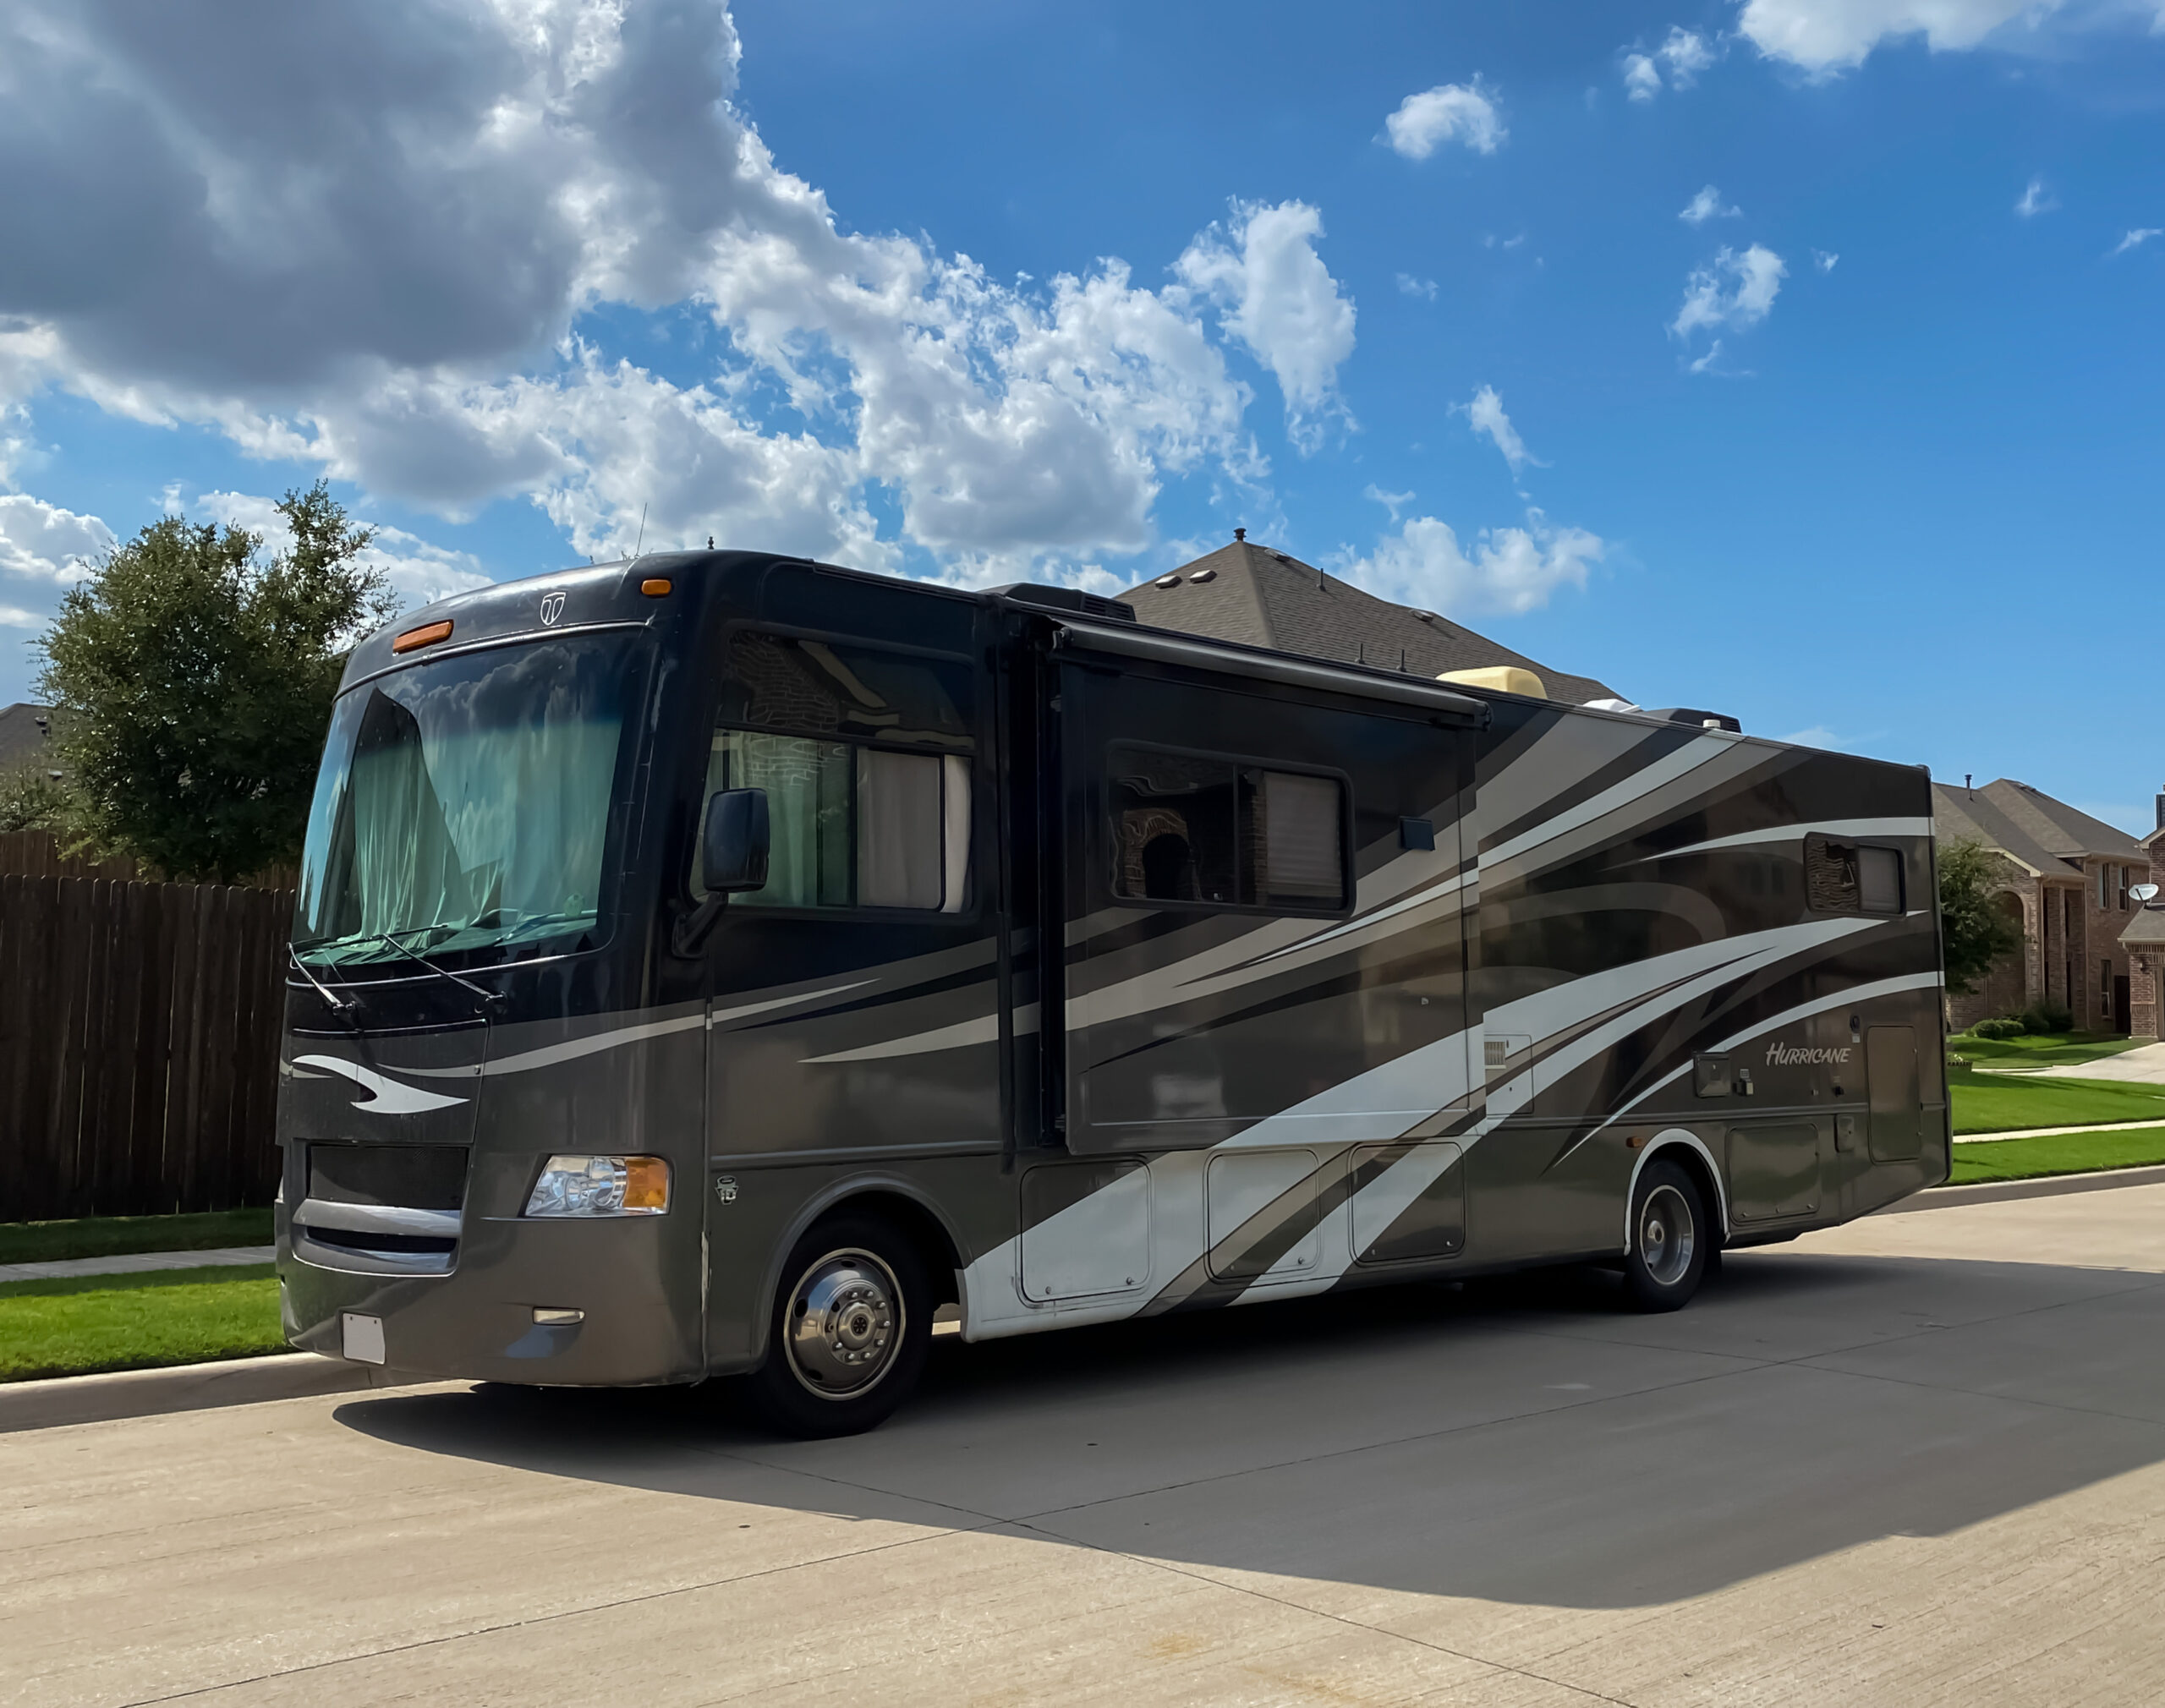 dewinterizing an RV